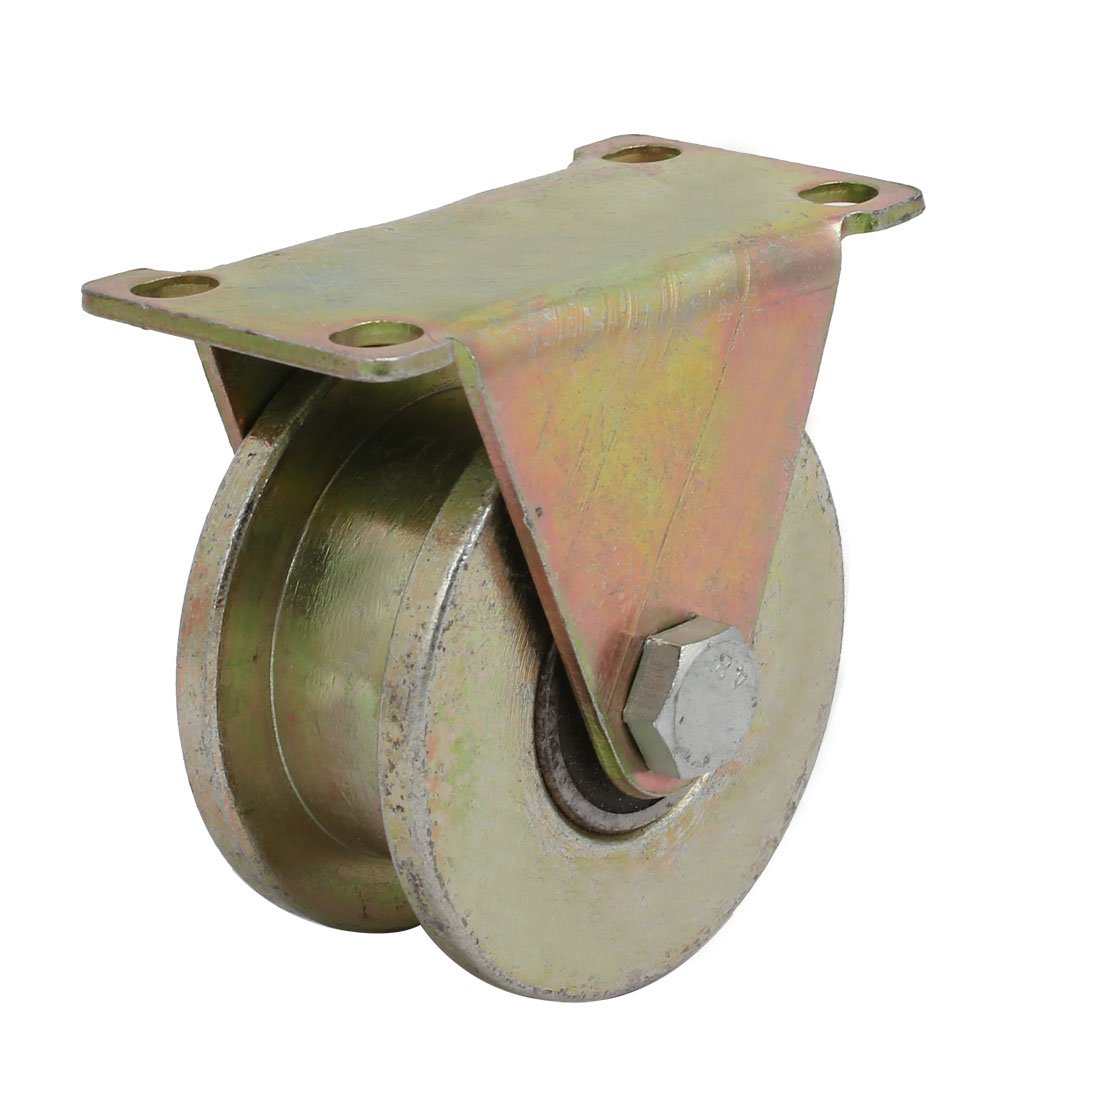 uxcell 80mm Dia Wheel H Groove Bearing Rigid Caster Wheel Industrial Hardware